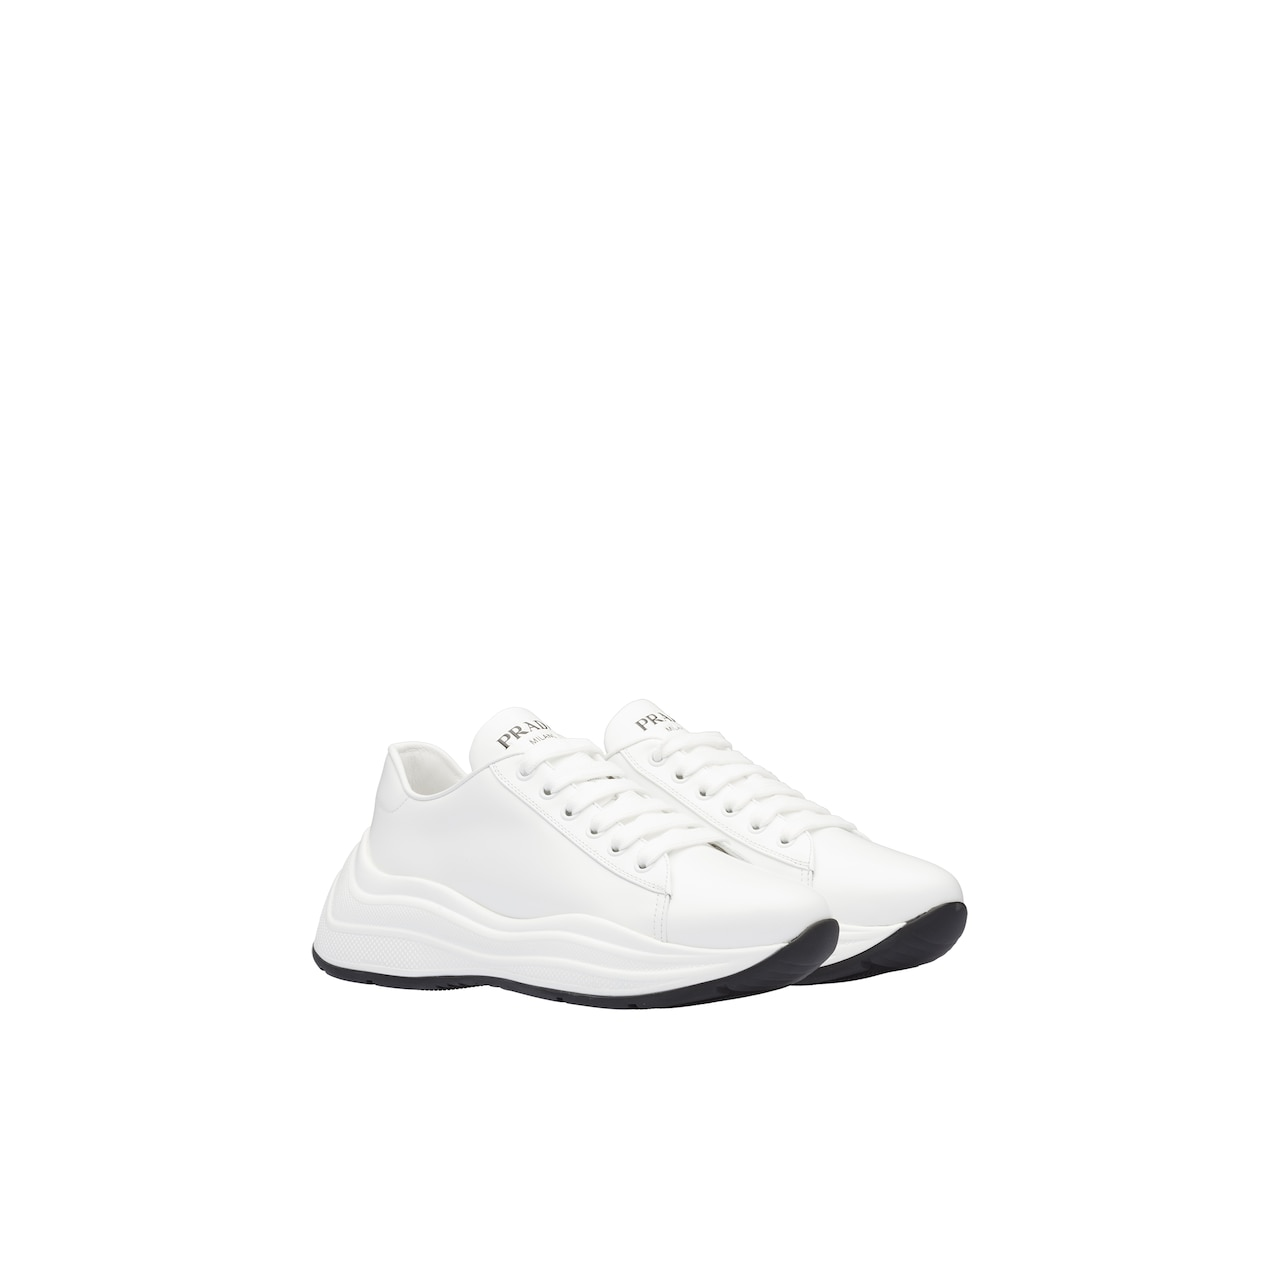 Prada Brushed leather sneakers 2